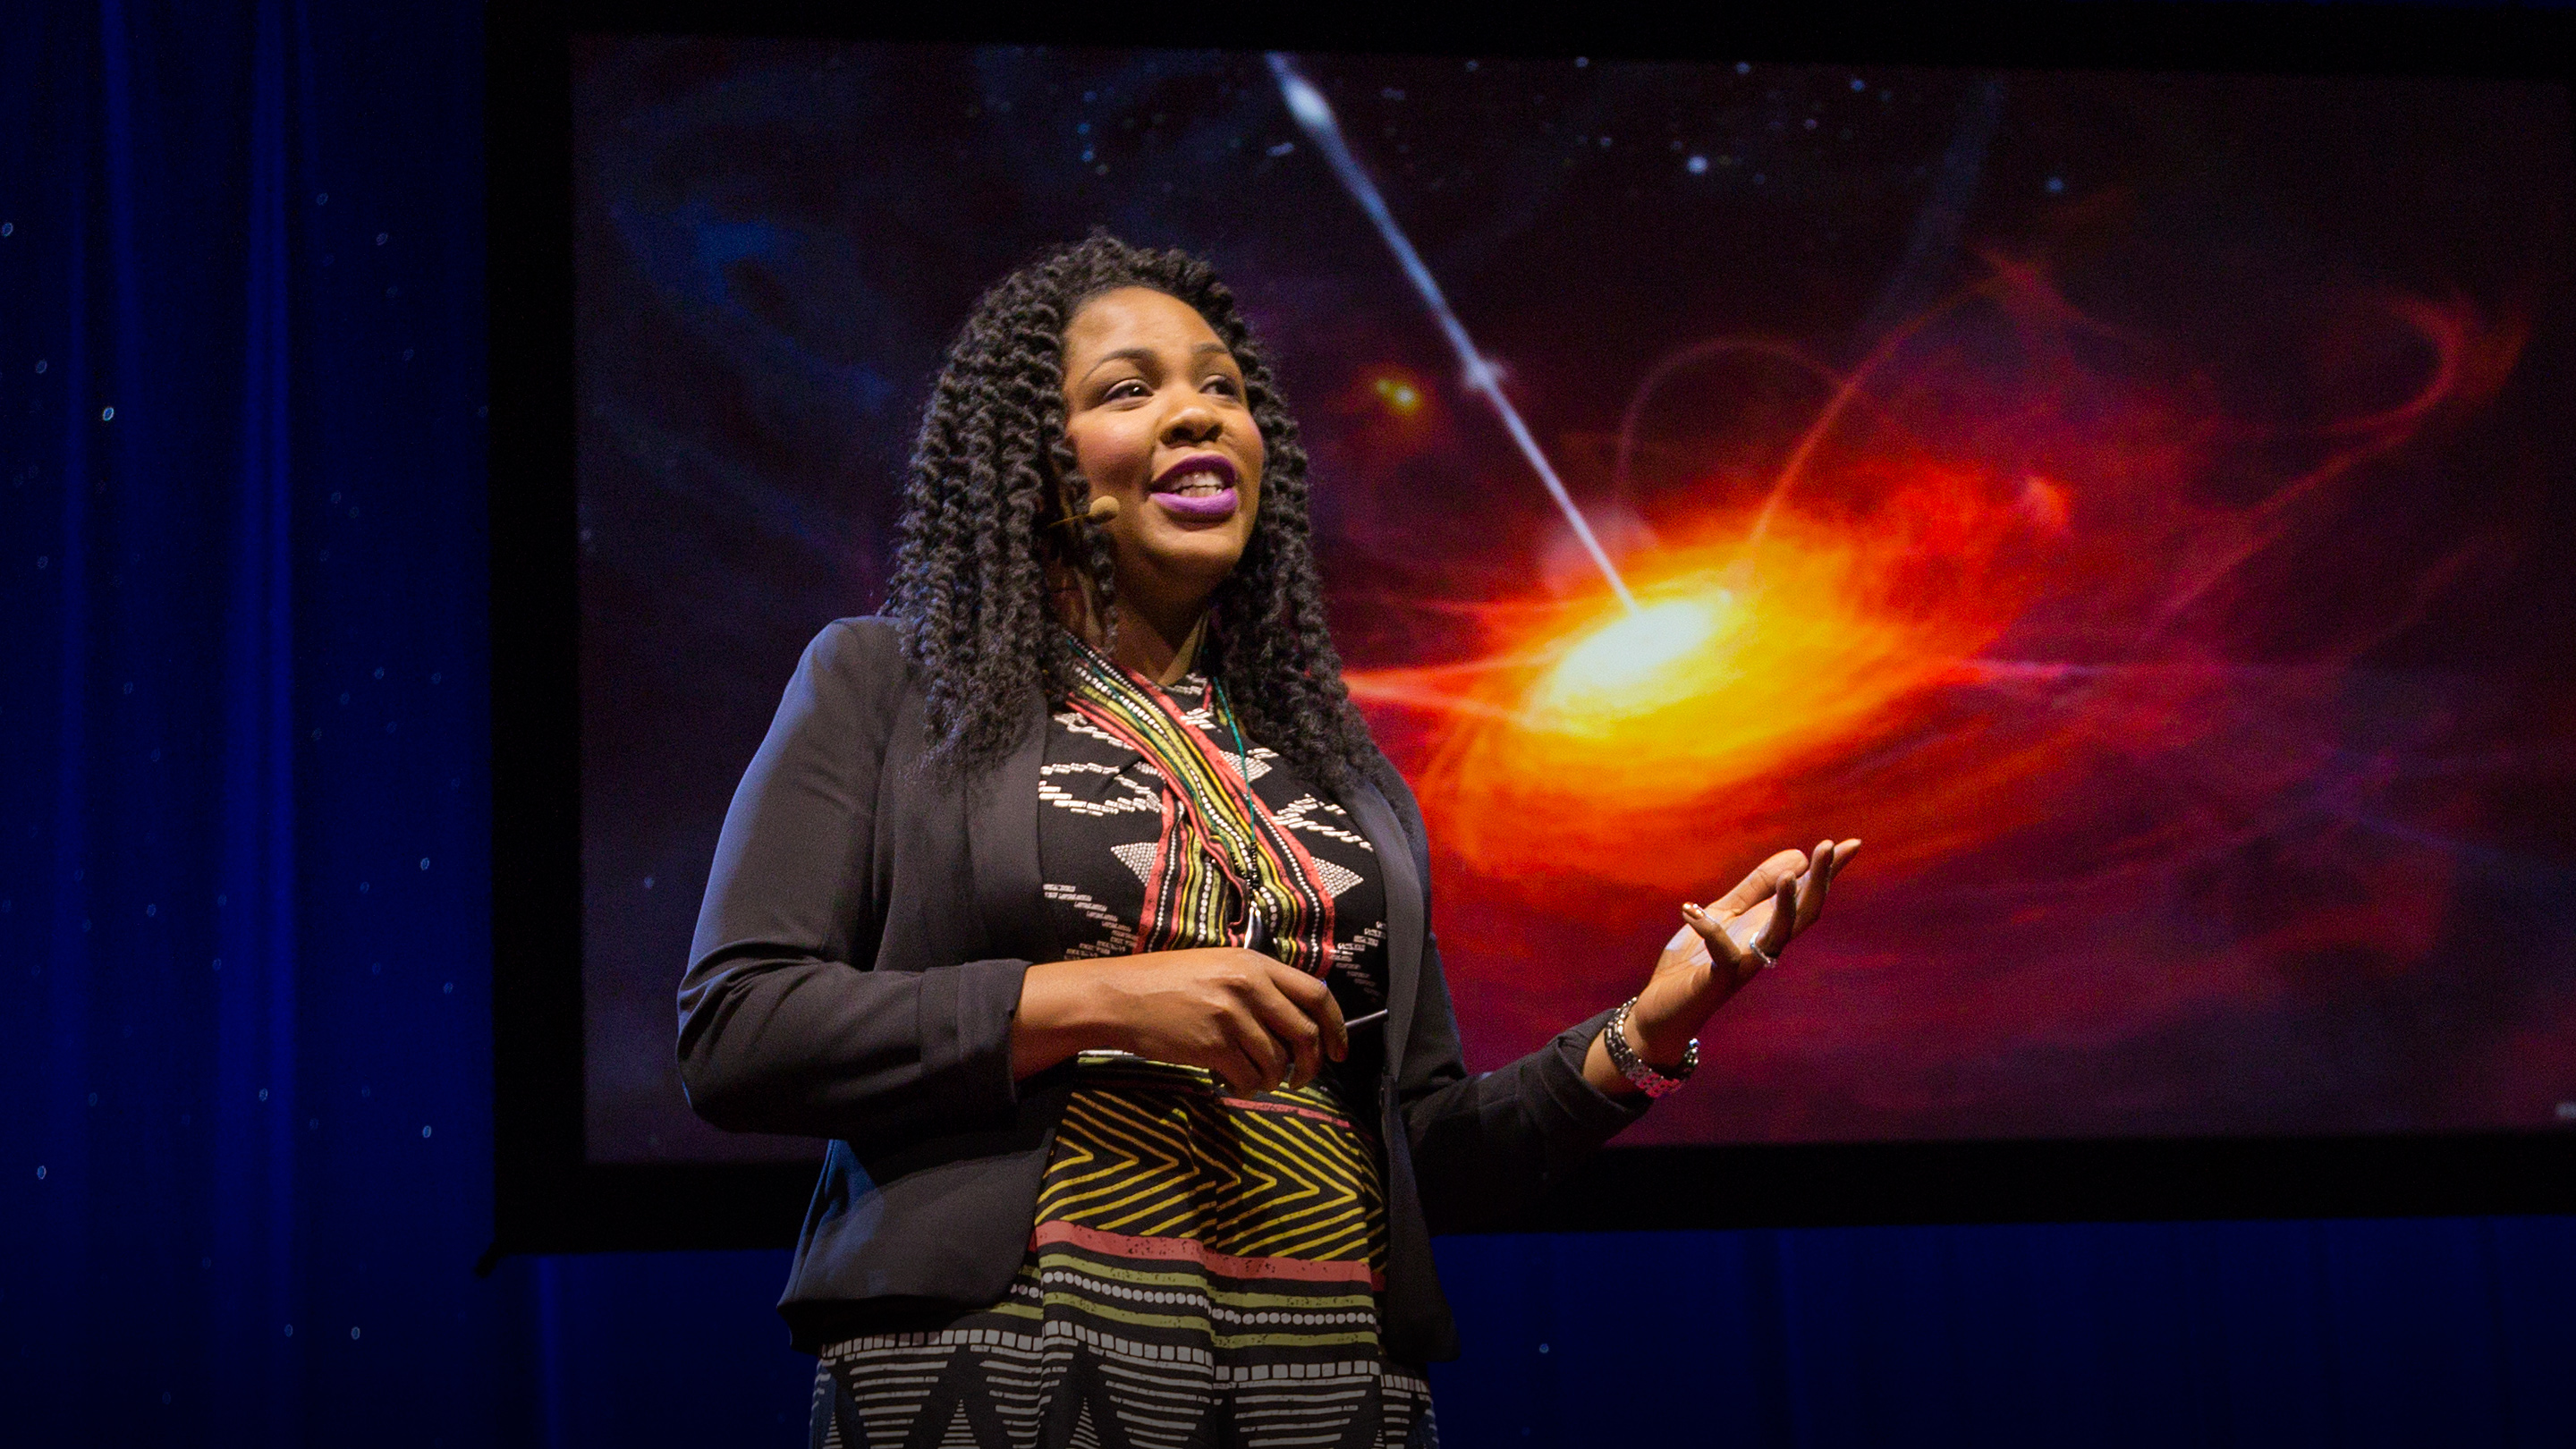 Jedidah Isler: How I fell in love with quasars, blazars and our incredible universe thumbnail